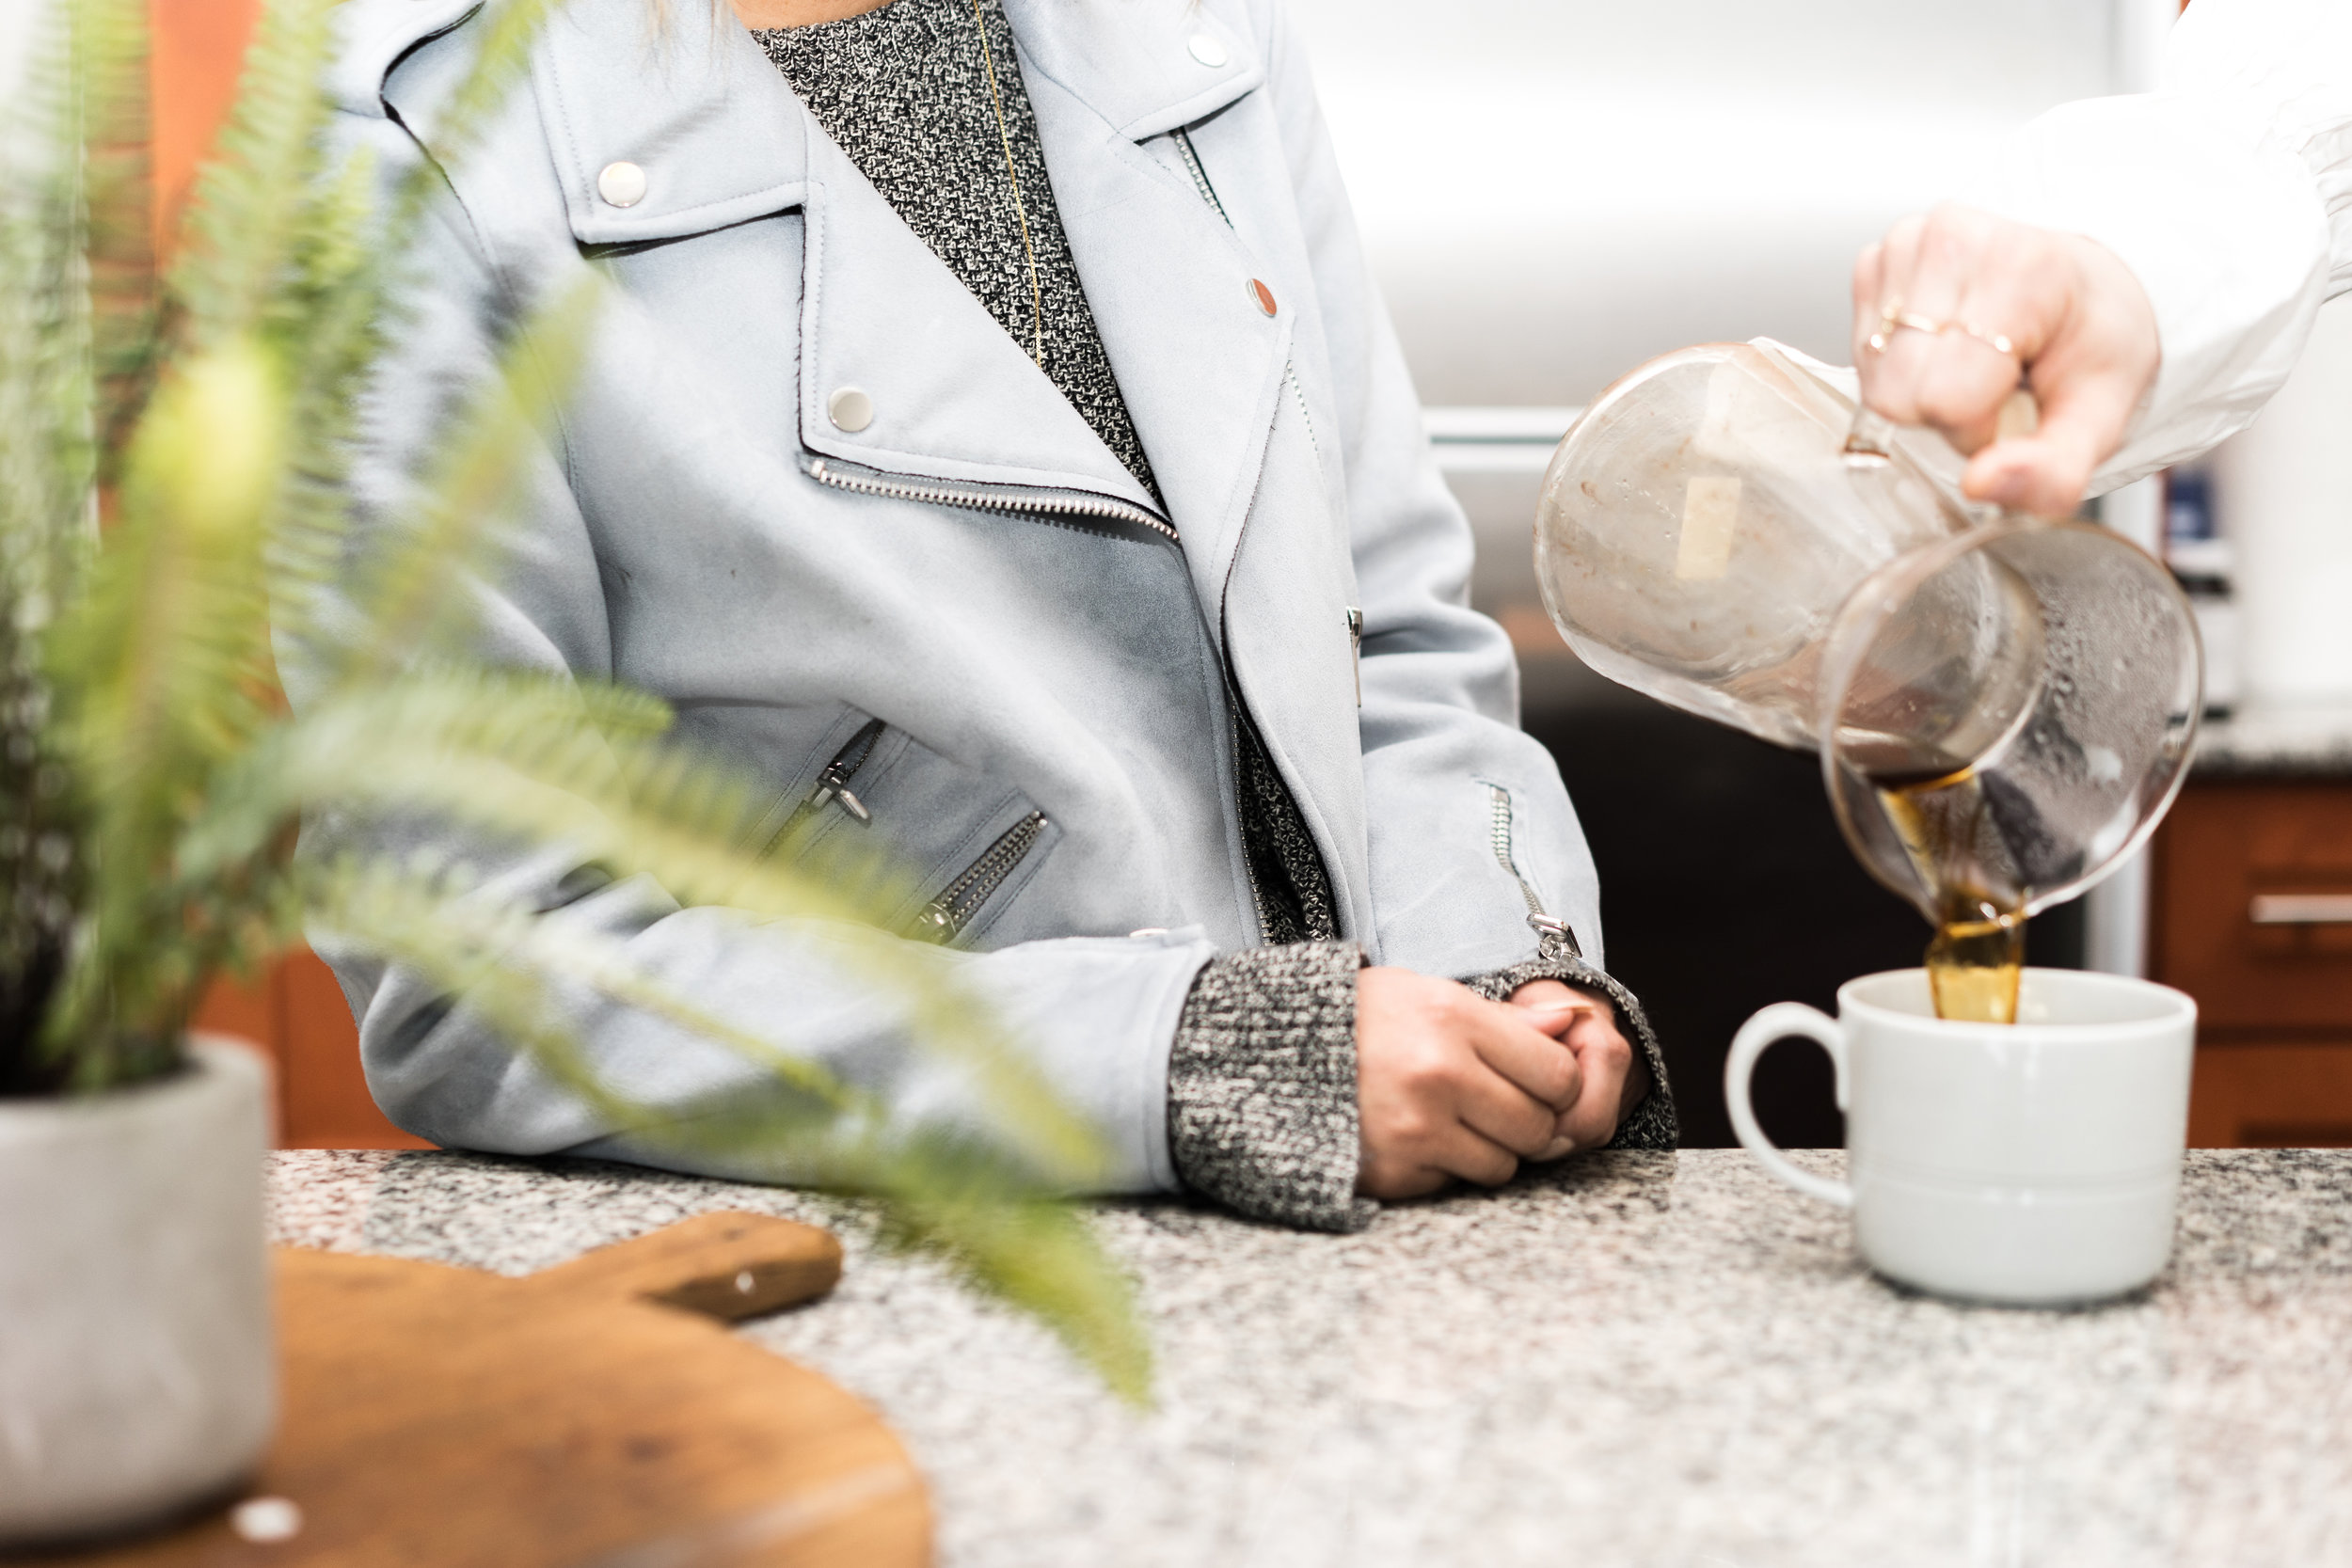 """Take the meeting - Trite as it may be, """"It's not what you know, it's who you know"""" is a real indicator of success for entrepreneurs. We're all busy, so when someone makes an introduction - say yes to a 30 minute coffee."""